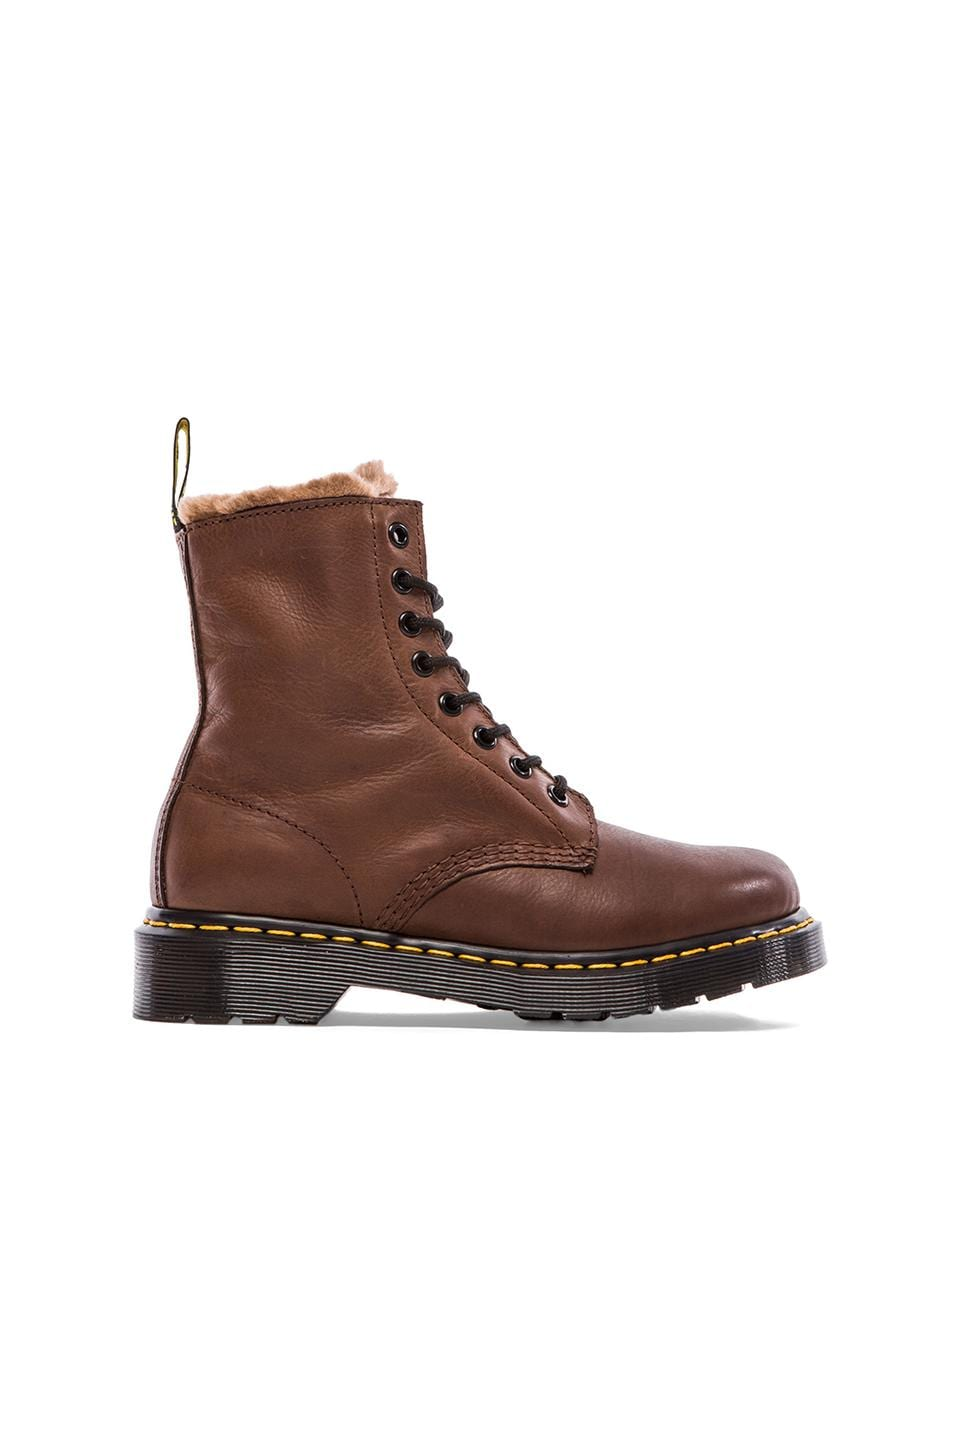 Dr. Martens Serena 8 Eye Boot with Faux Fur Liner in Dark Brown